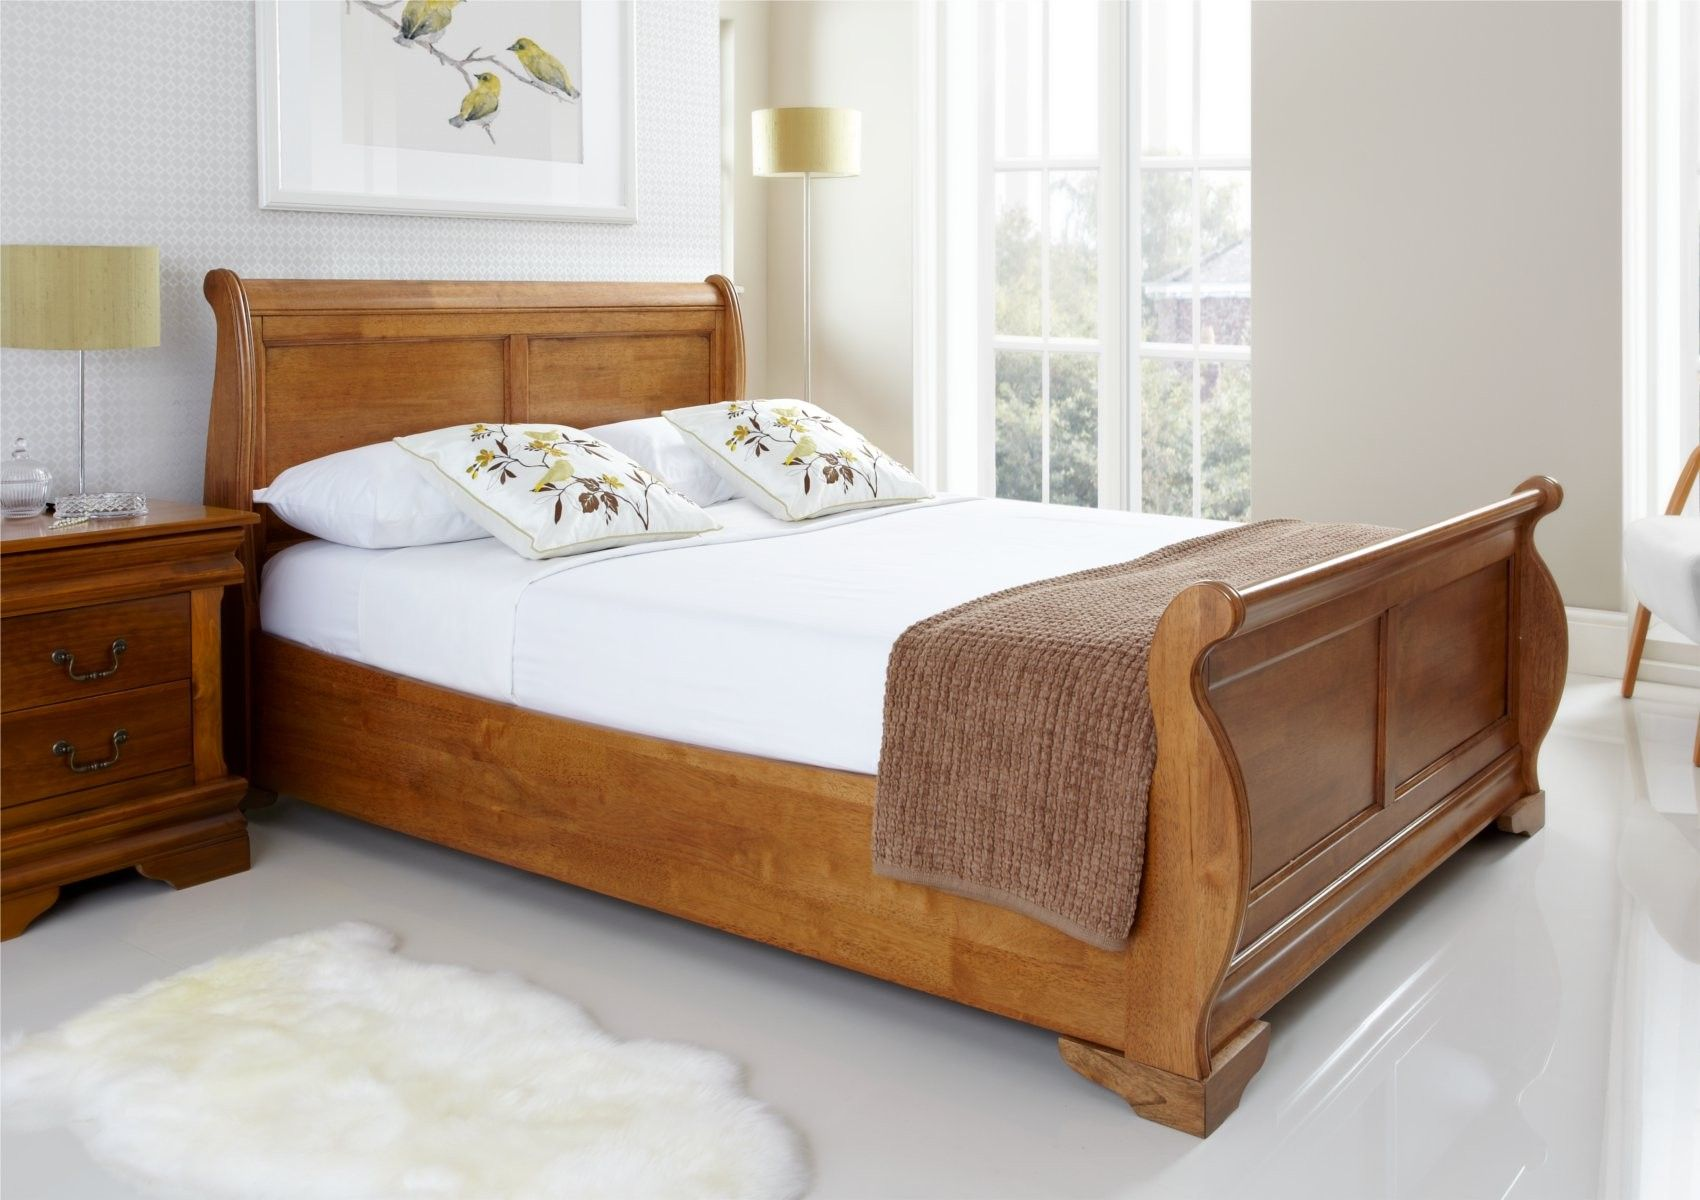 Our classic and much loved Louie Sleigh Bed is now also available in an Oak  Finish. Our classic and much loved Louie Sleigh Bed is now also available